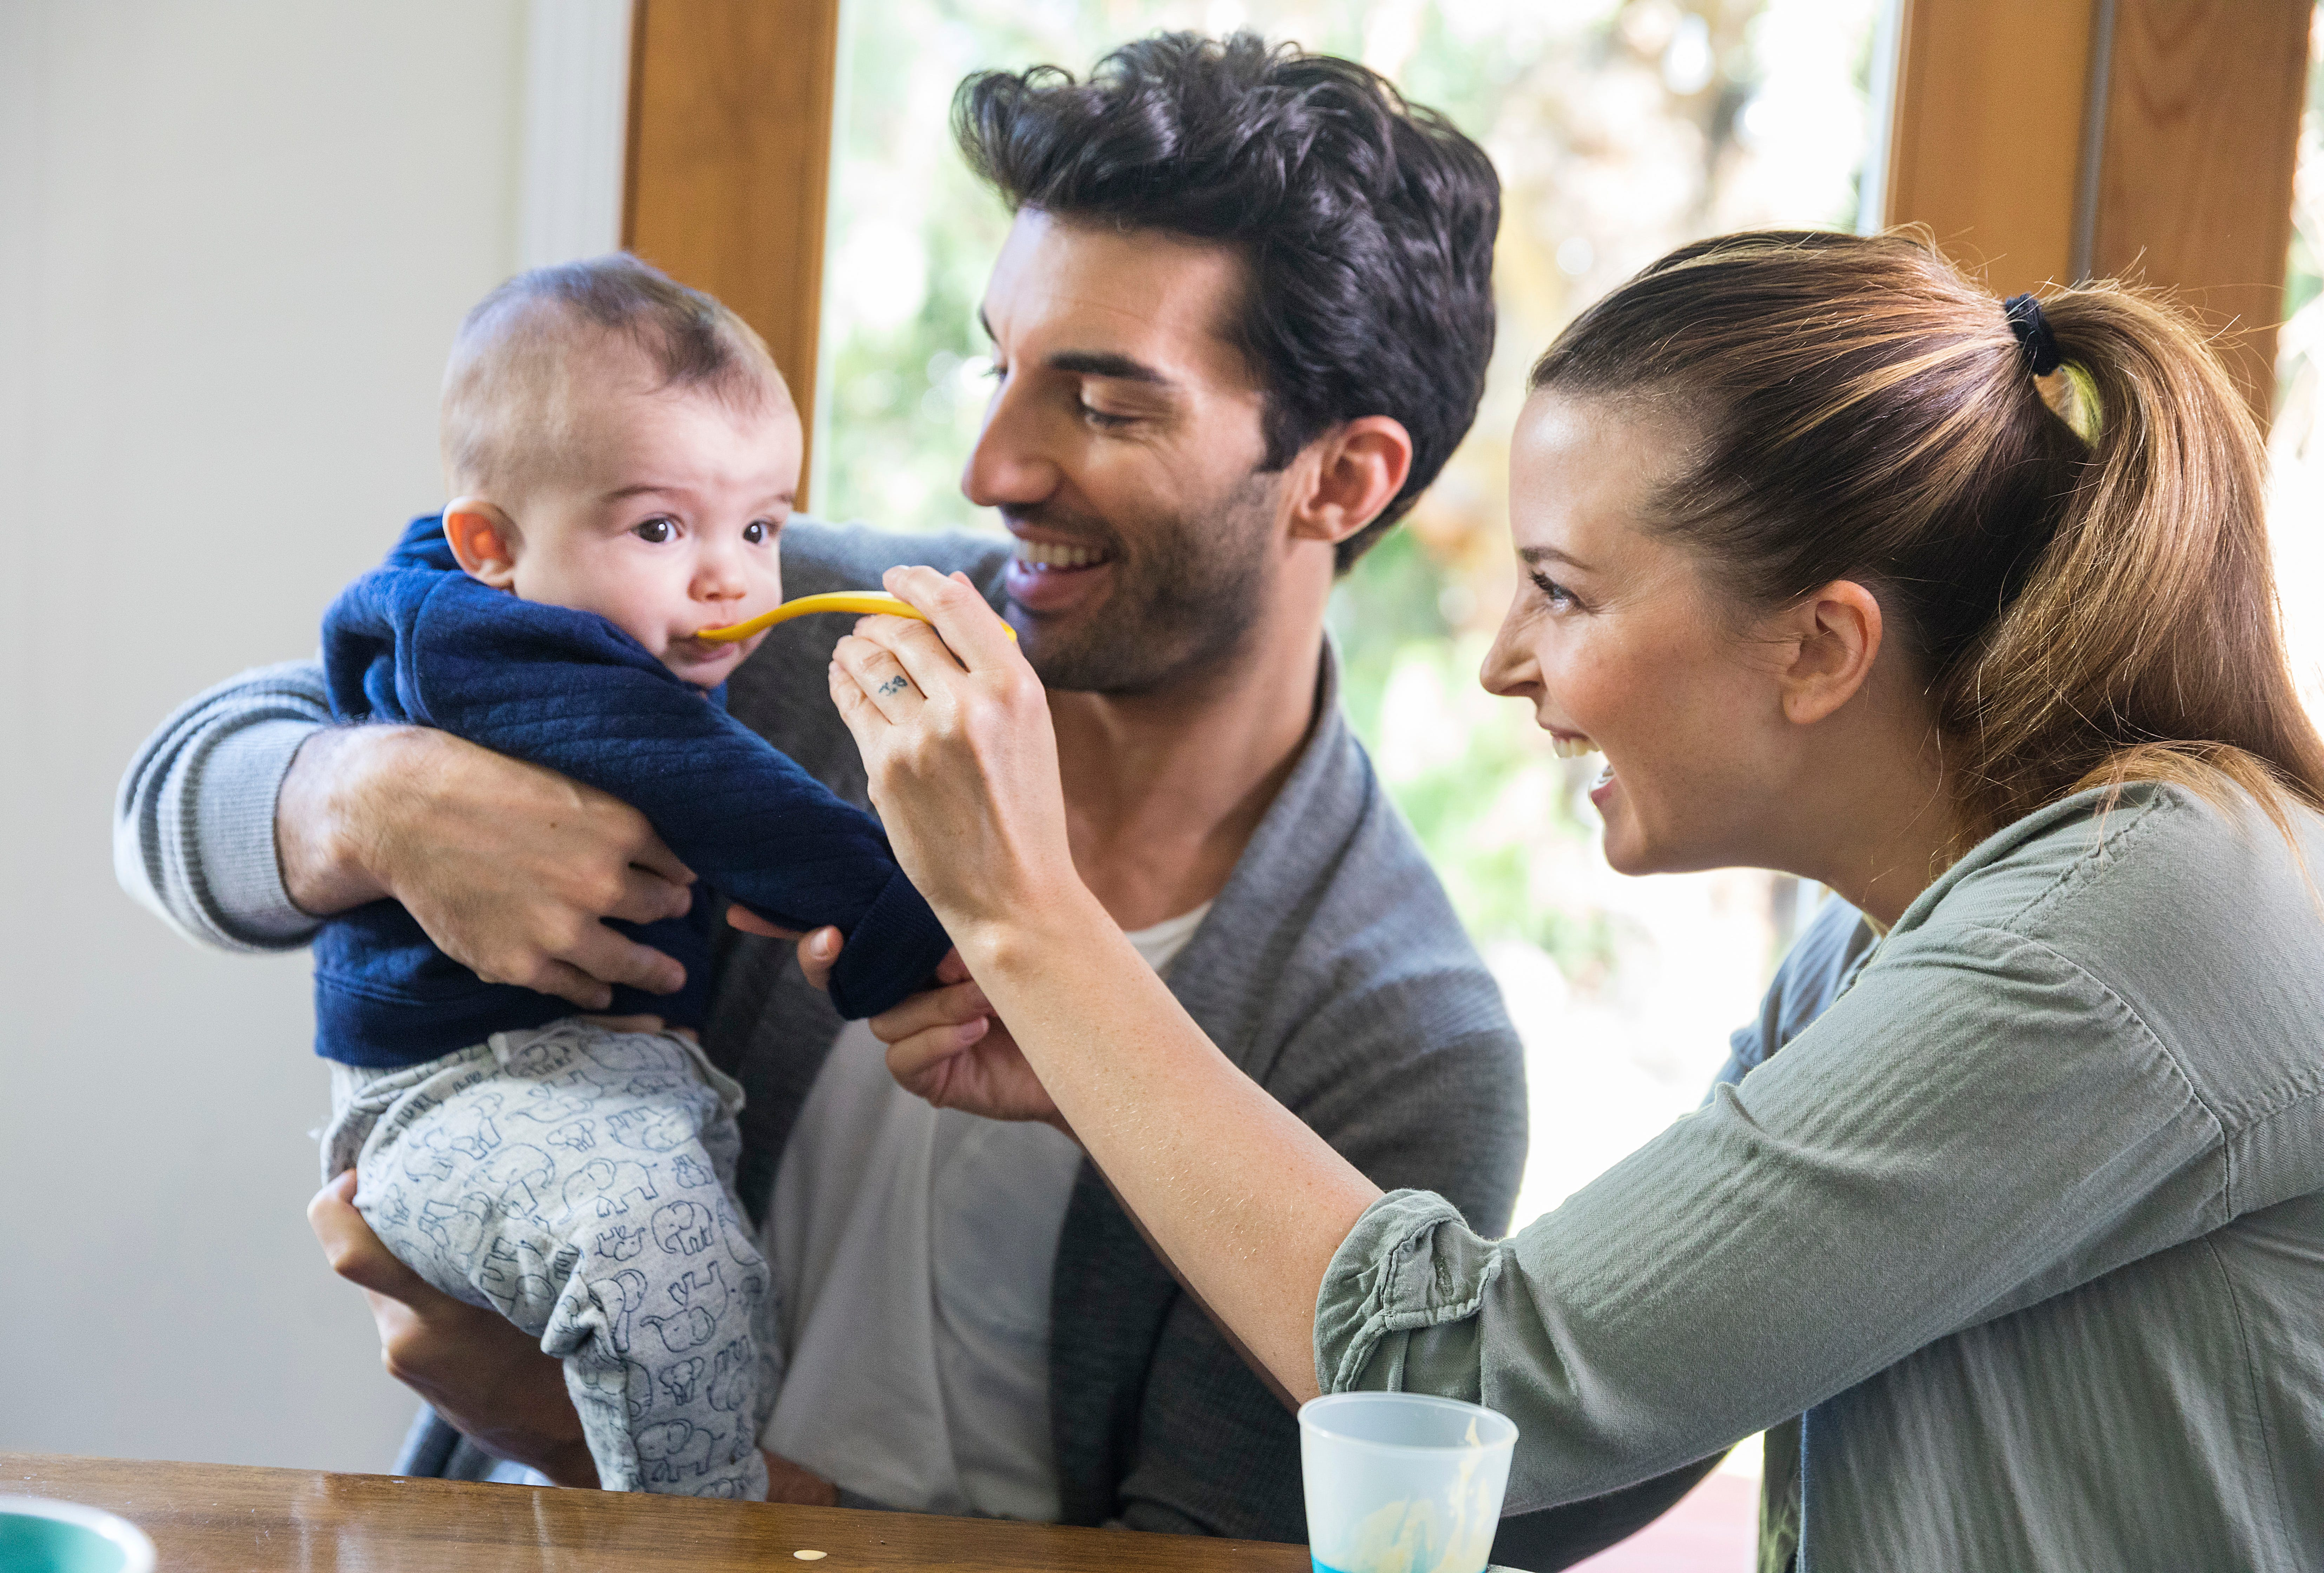 Q&A: 'Jane the Virgin' star Justin Baldoni on being a busy parent and raising feminist kids